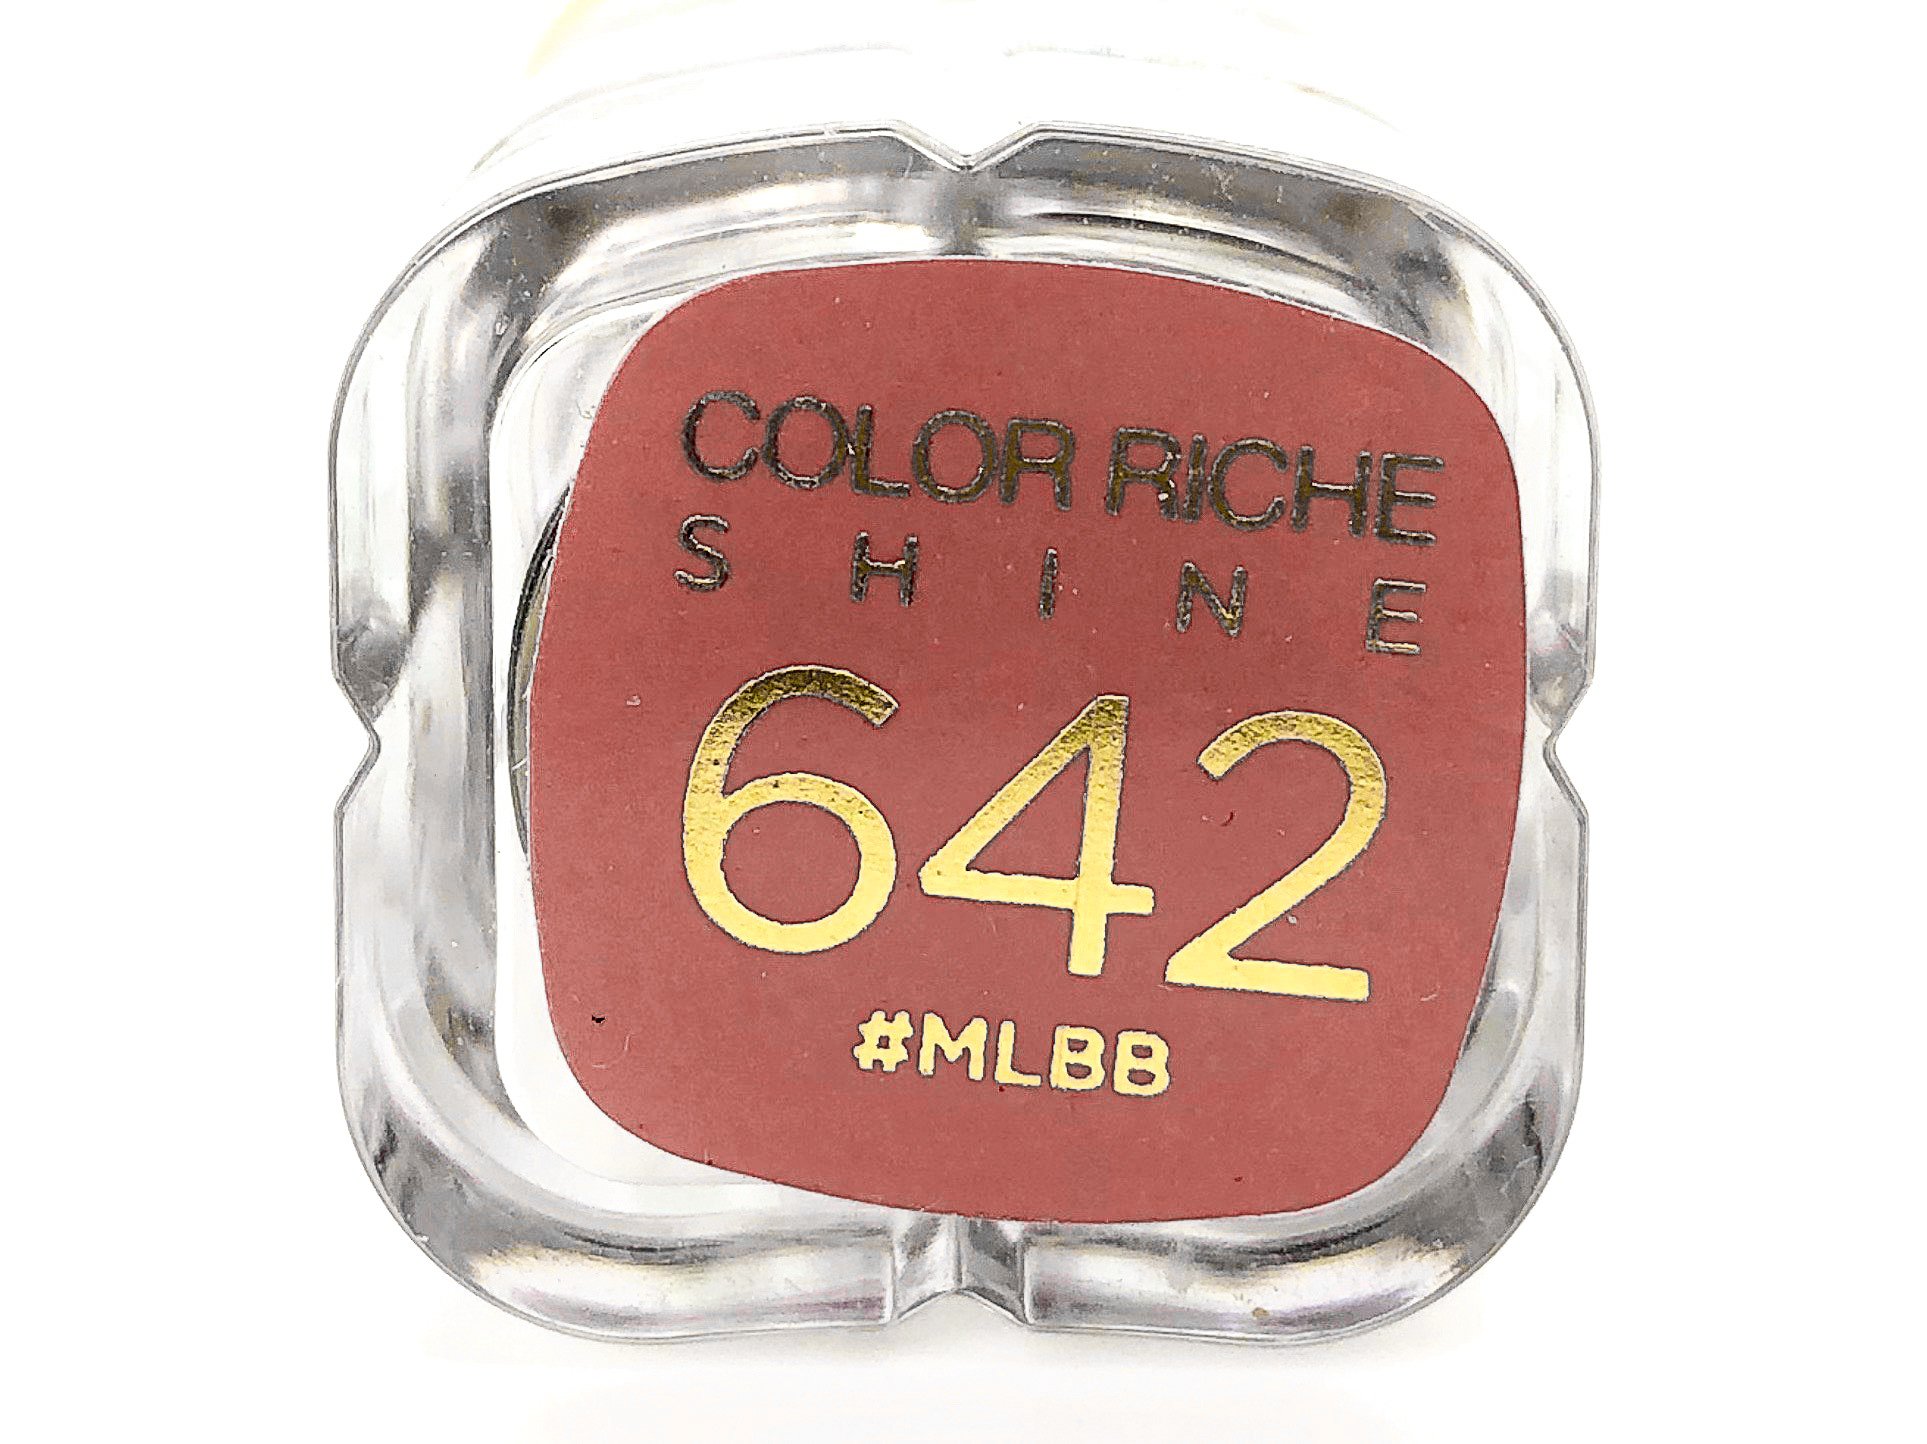 Recensione L'Oréal MLBB Color Riche Shine Lipstick (8)